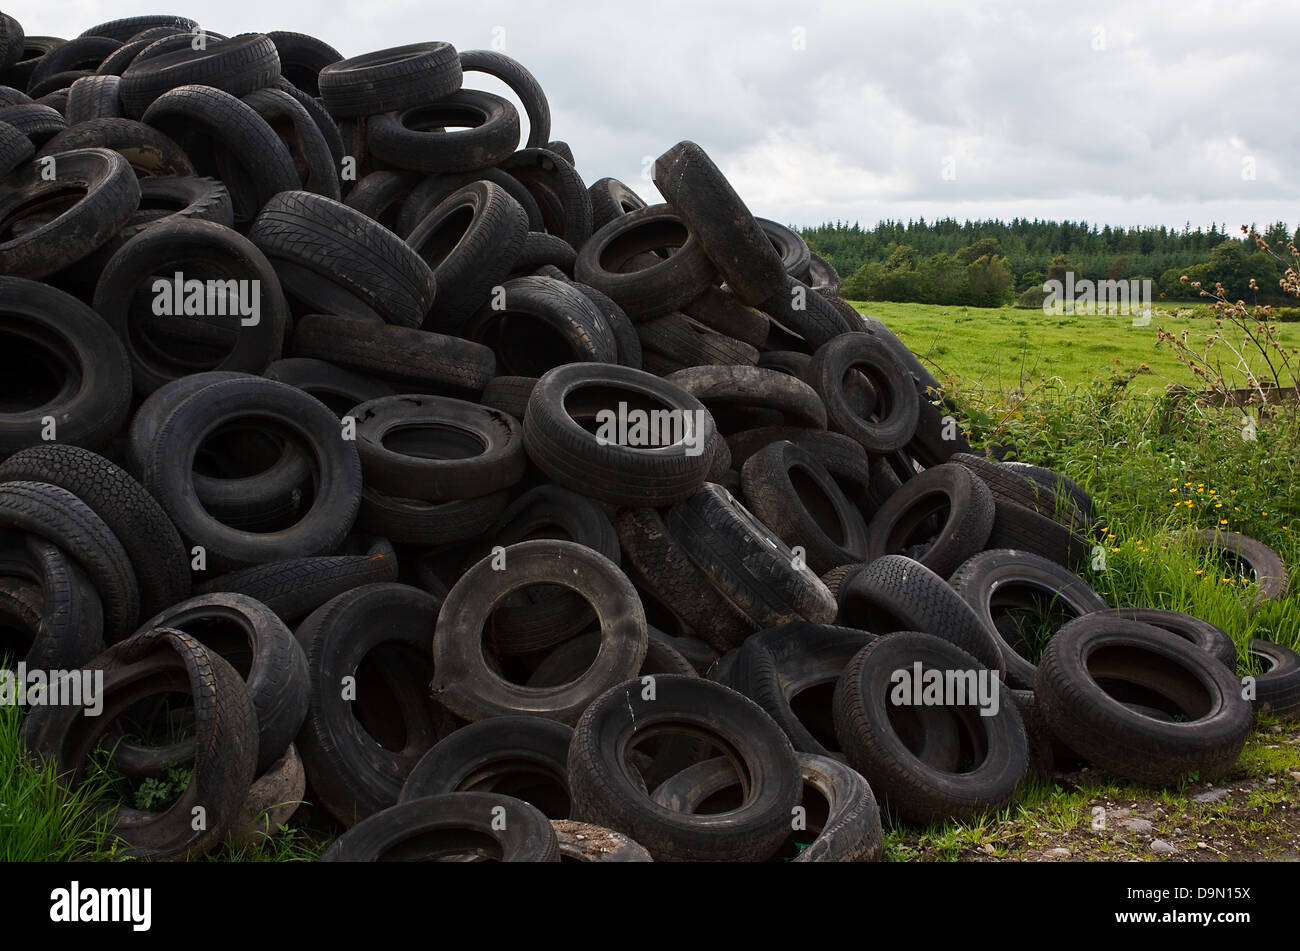 Pile of old vehicle tires dumped in the countryside by farmer - Stock Image